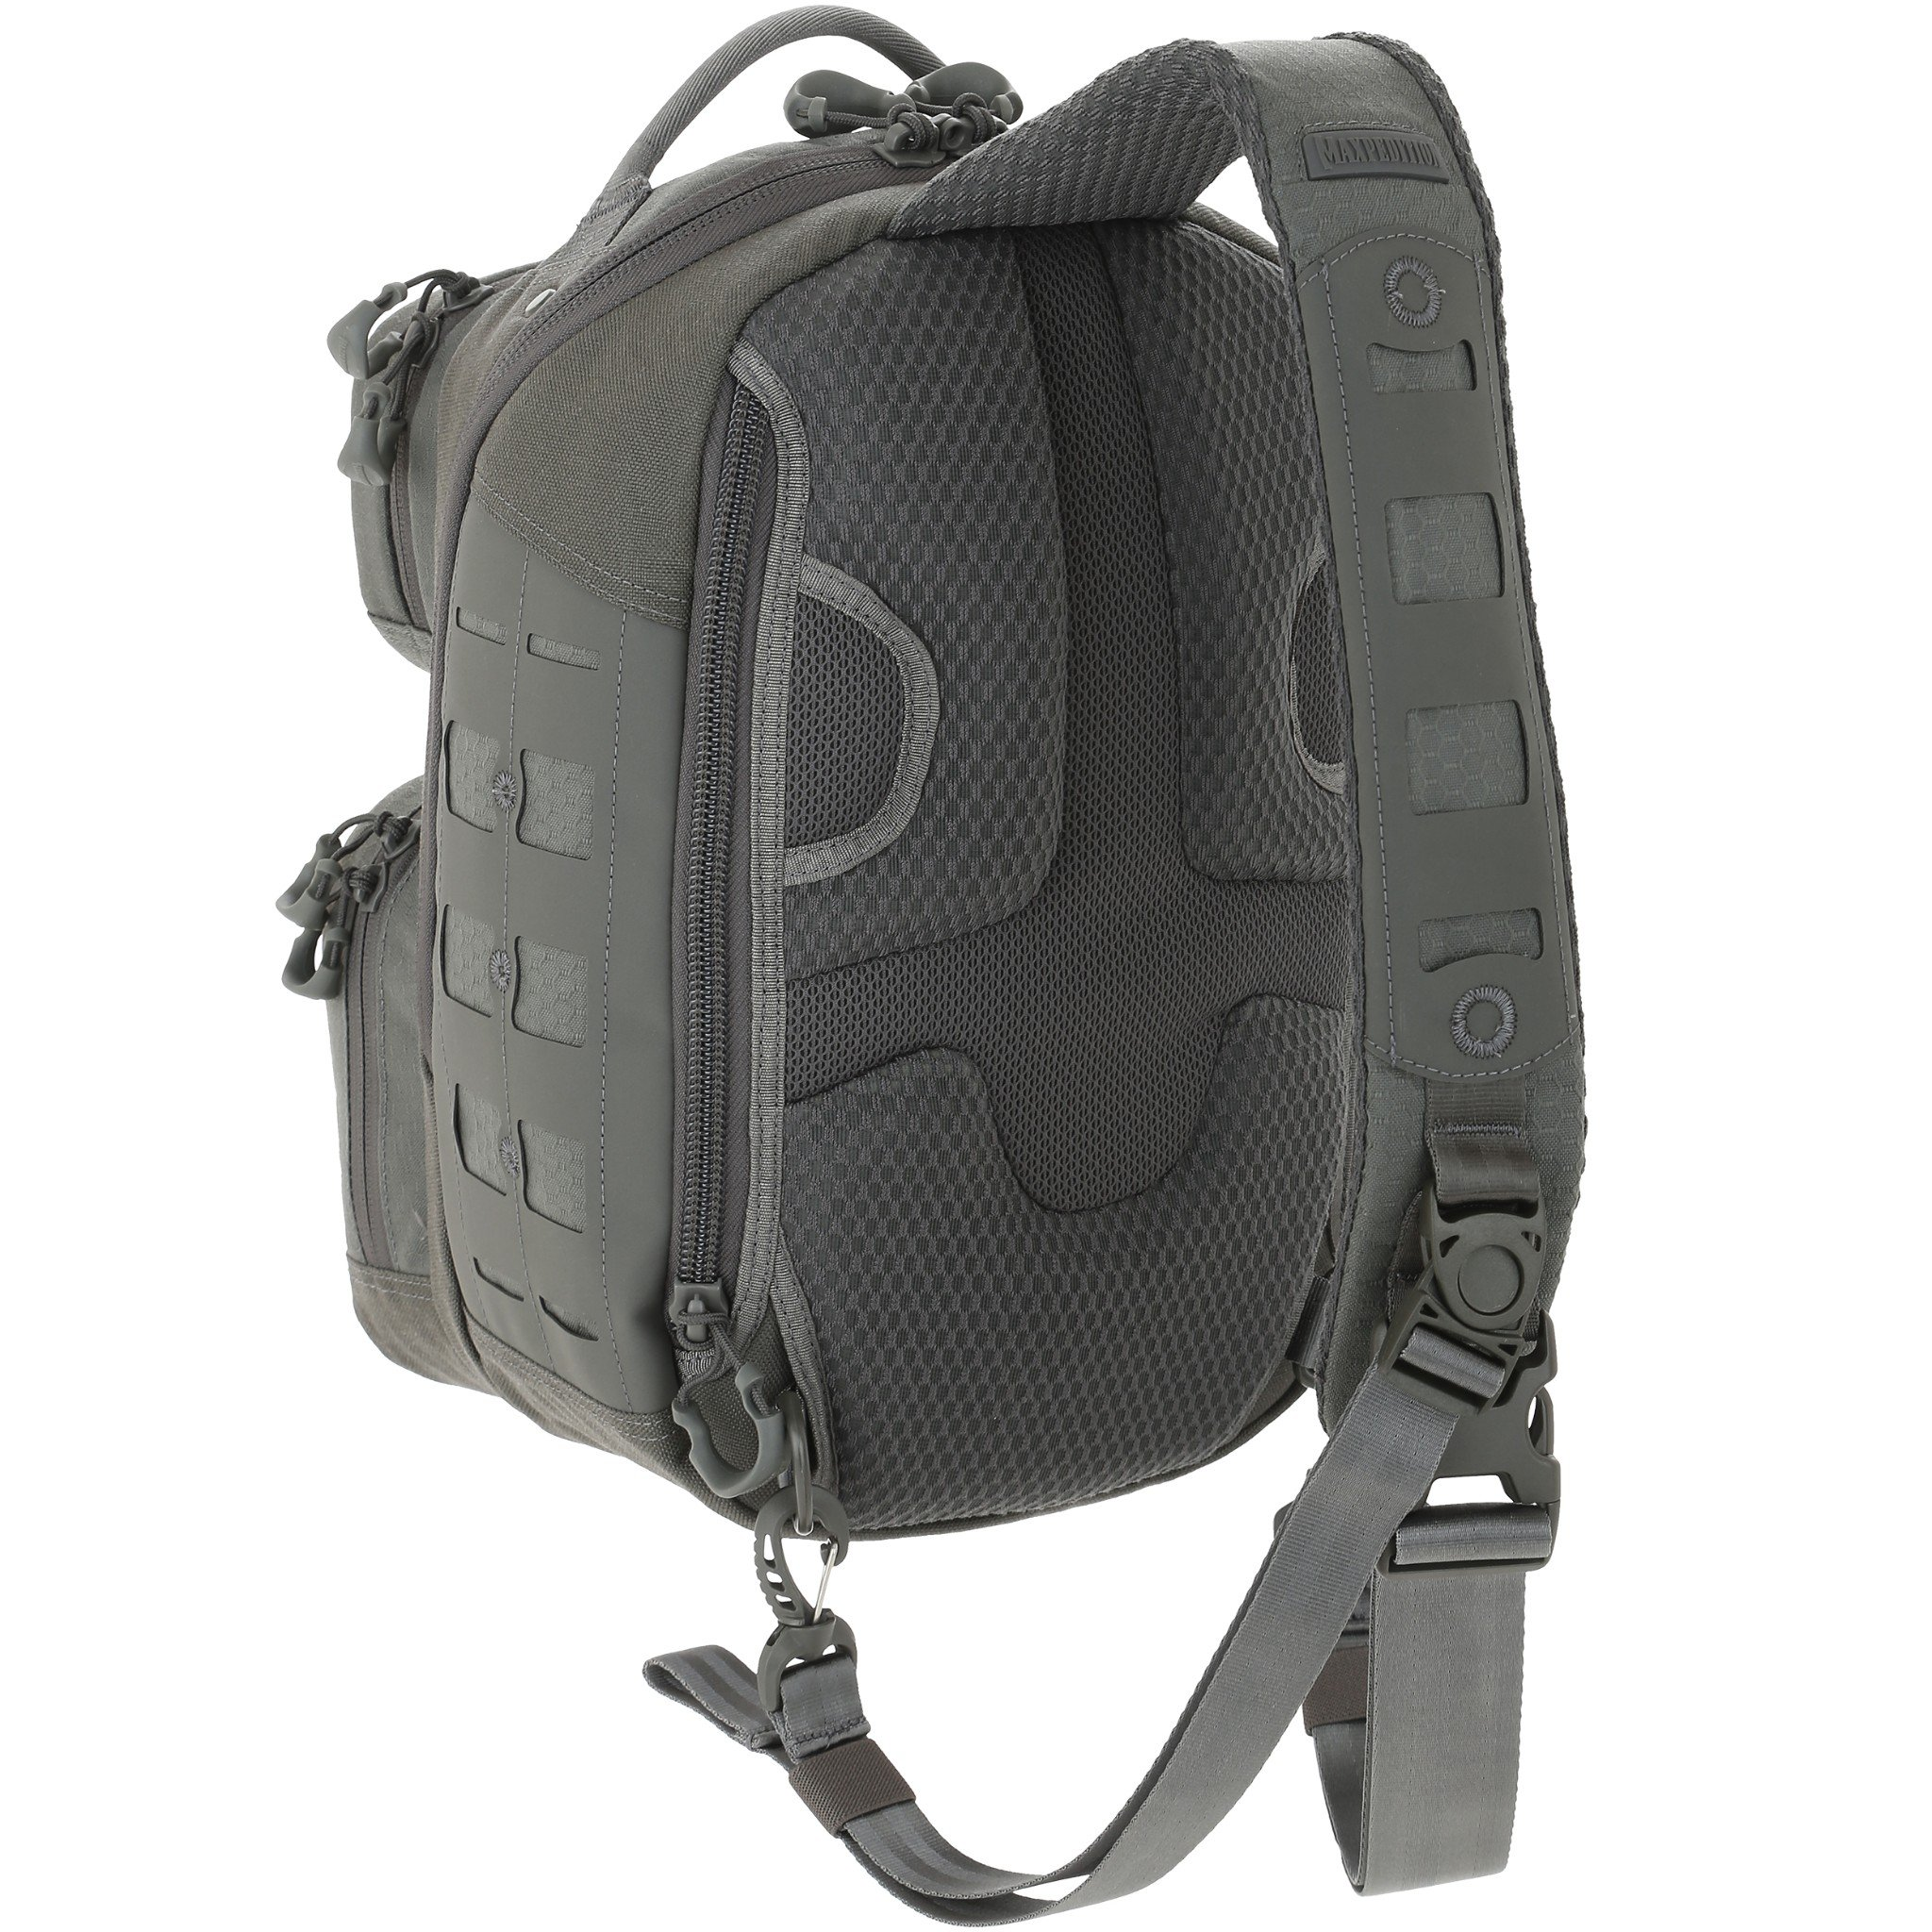 Balo 1 Quai Maxpedition EDGEPEAK v2.0 – Gray